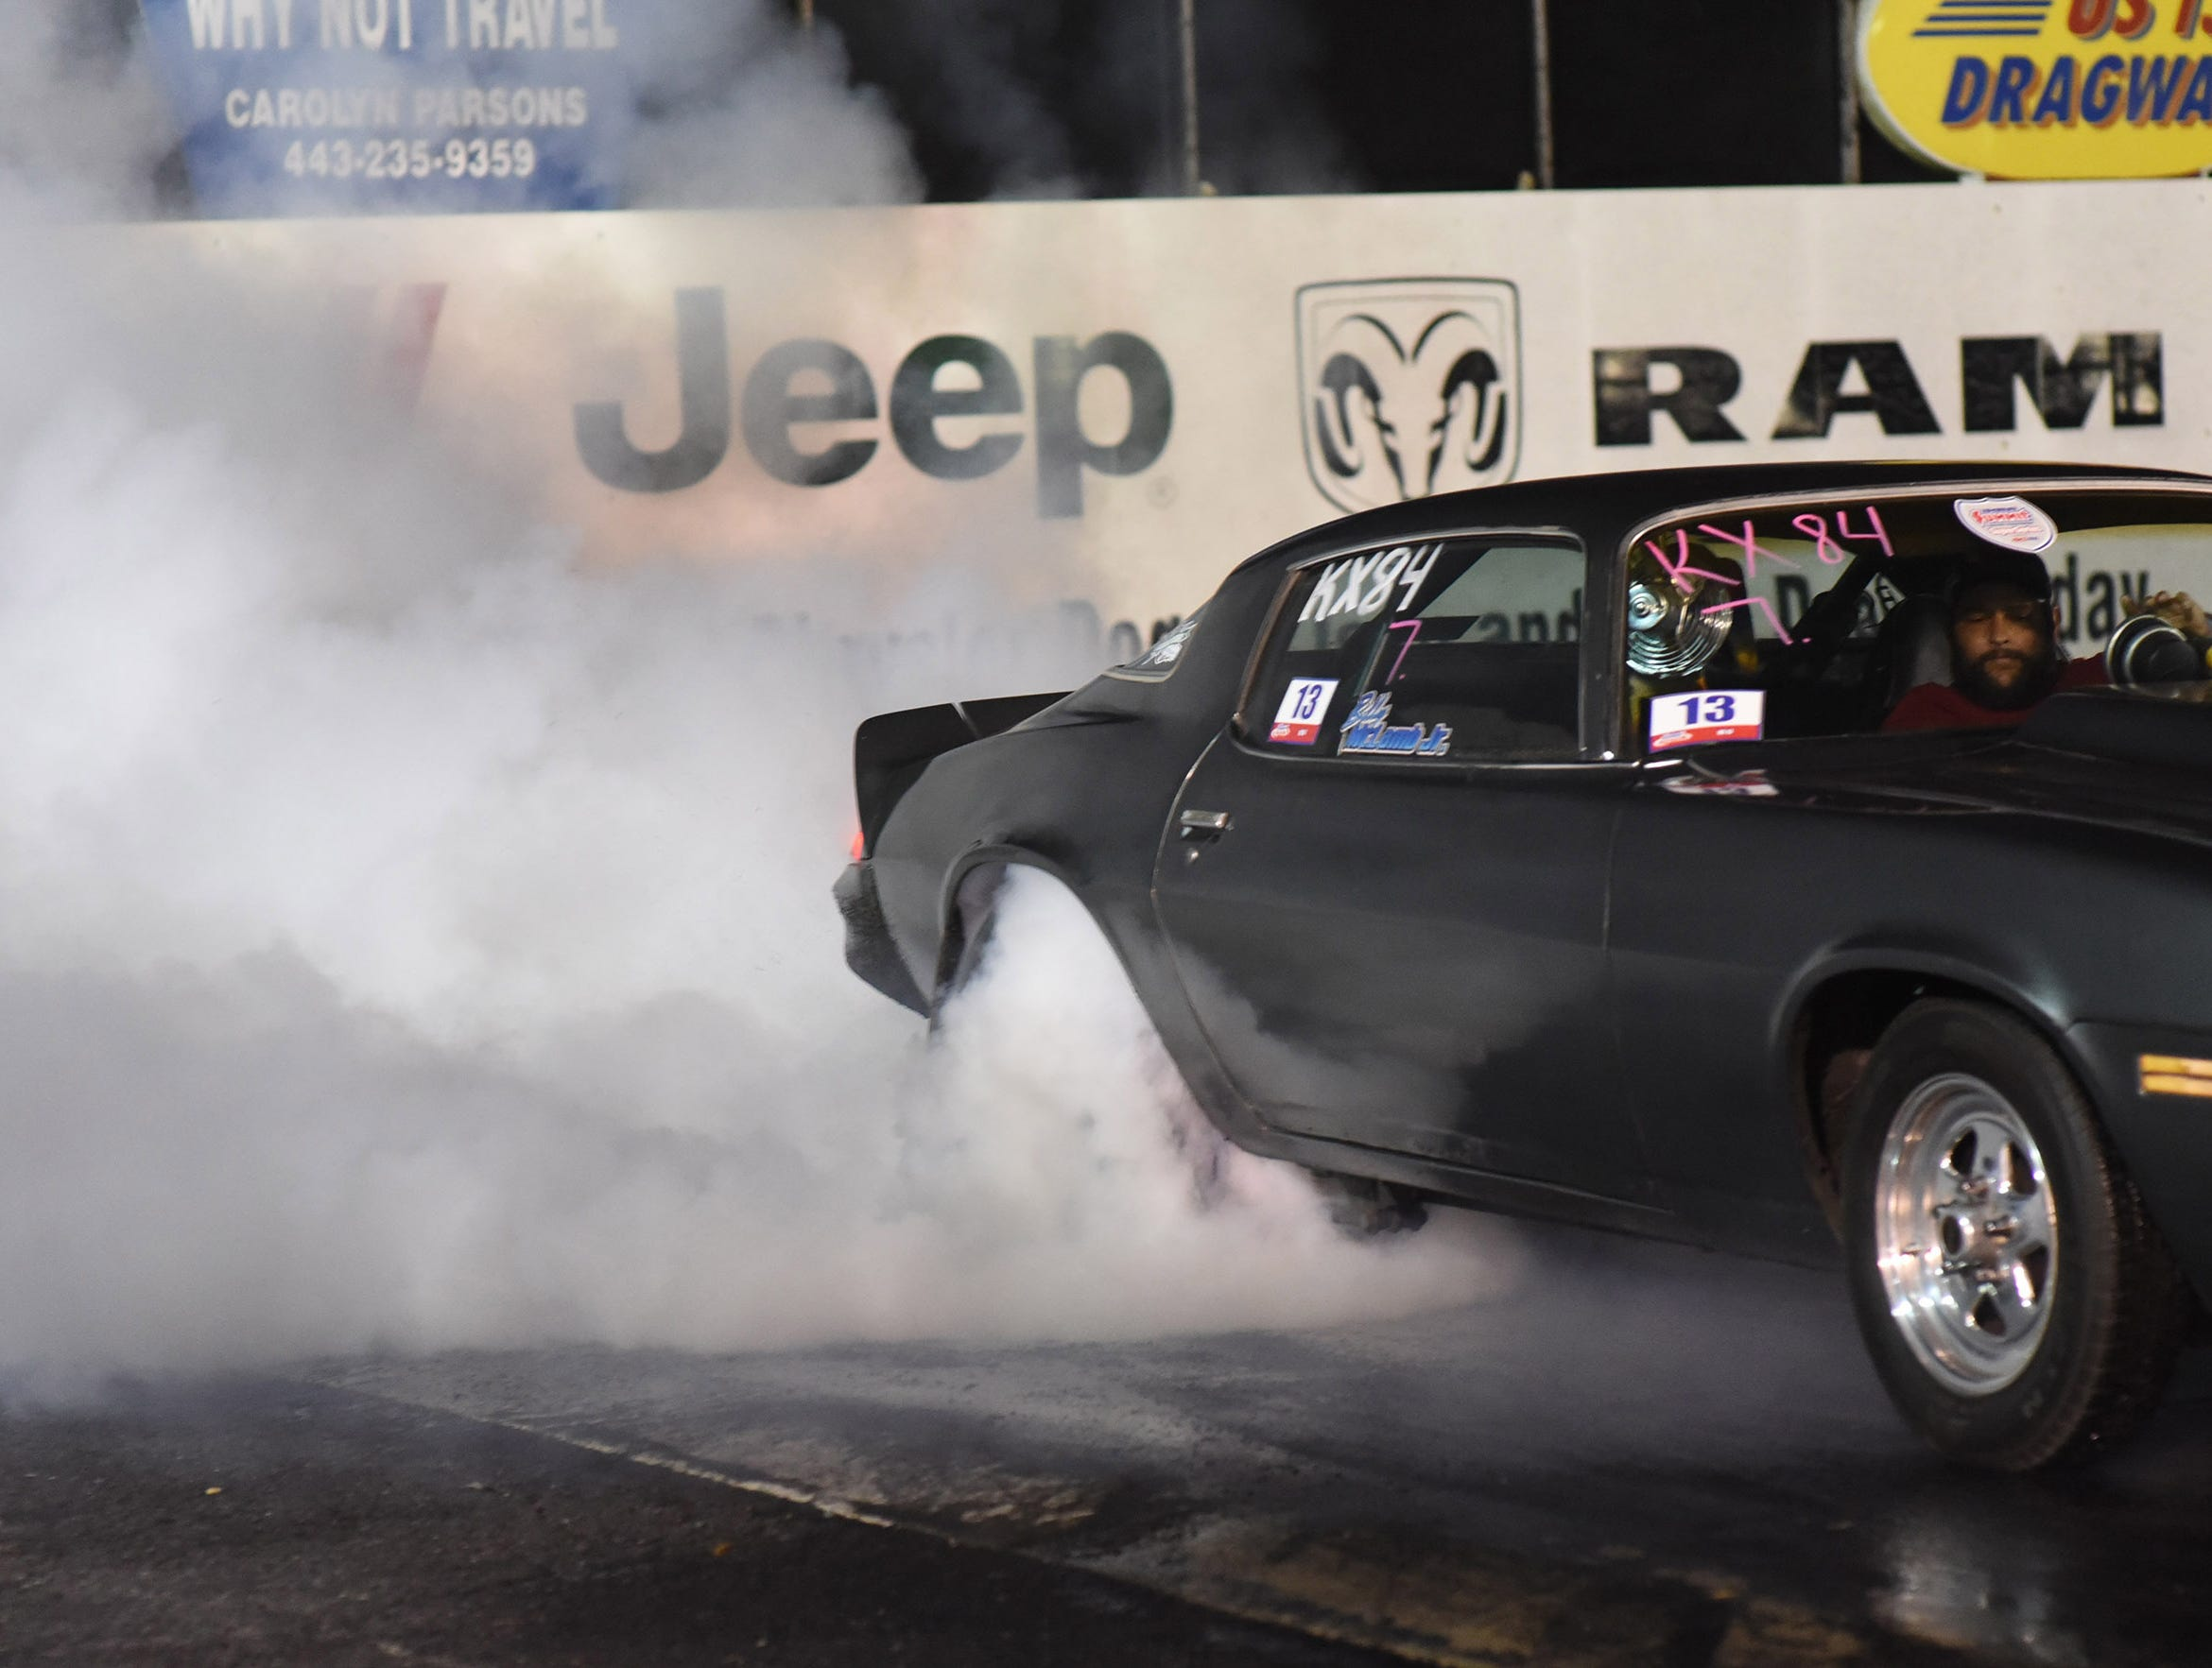 Billy McLamb competes in the first Endless Summer Cruisin' 2018 Burnout Contest at the U.S. 13 Dragway in Delmar. Billy McLamb of Mardela Springs was the winner of the contest and $500 sponsored by Special Event Productions Inc. (Photo by Todd Dudek for The Daily Times)